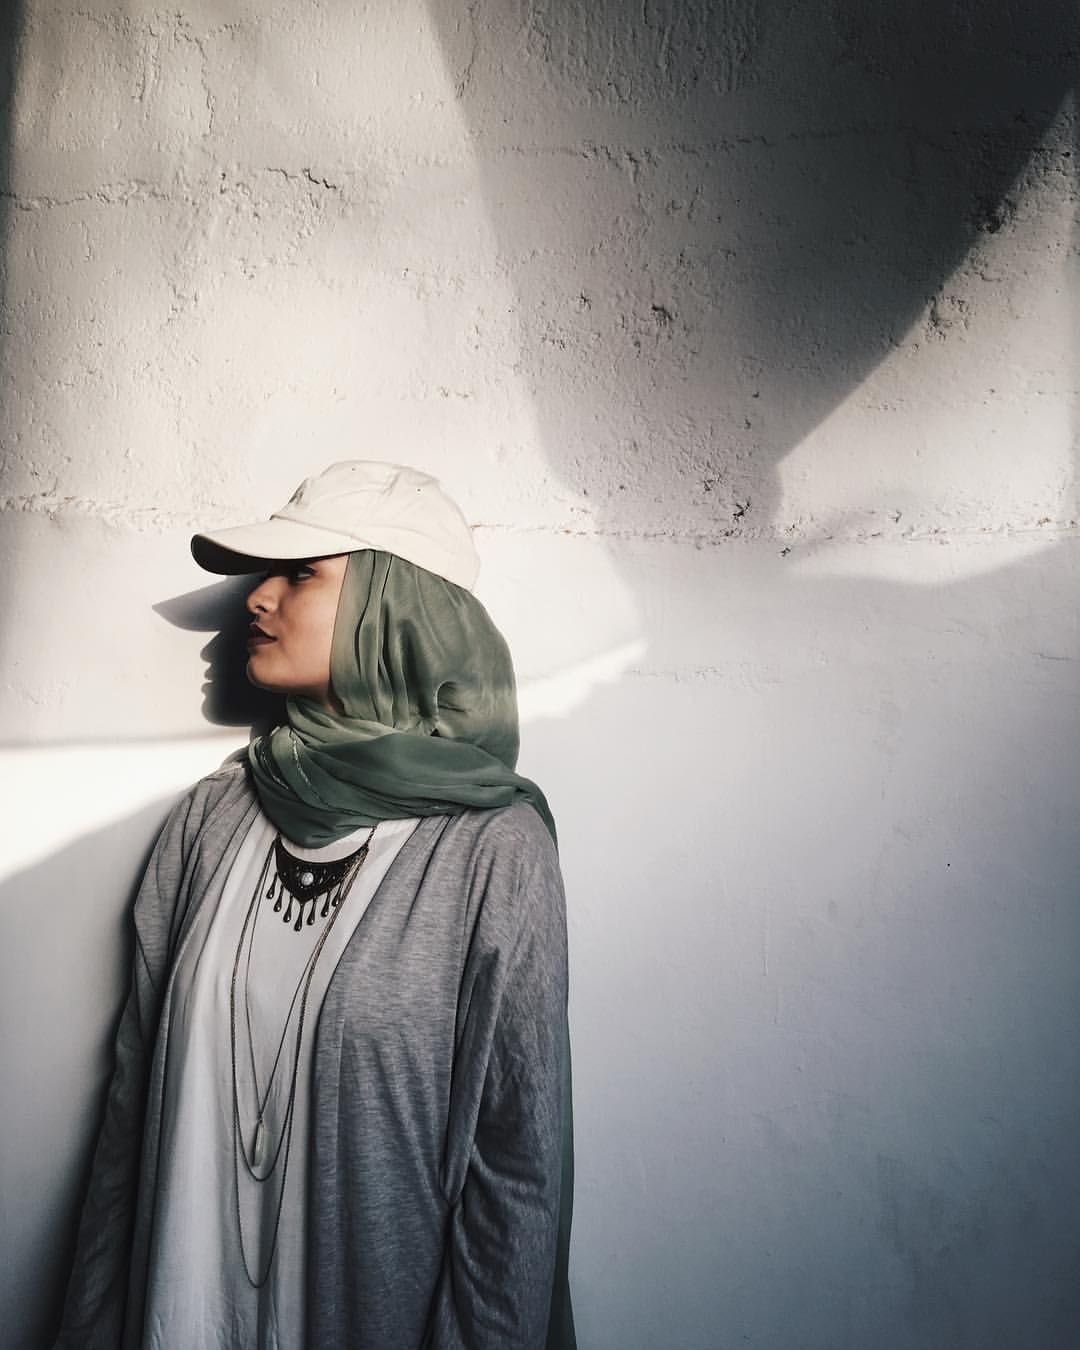 Outfit by noor unnahar modest style tumblr indie pale grunge hipsters mipsters aesthetics beige muslim fashion hijab instagram photography ideas